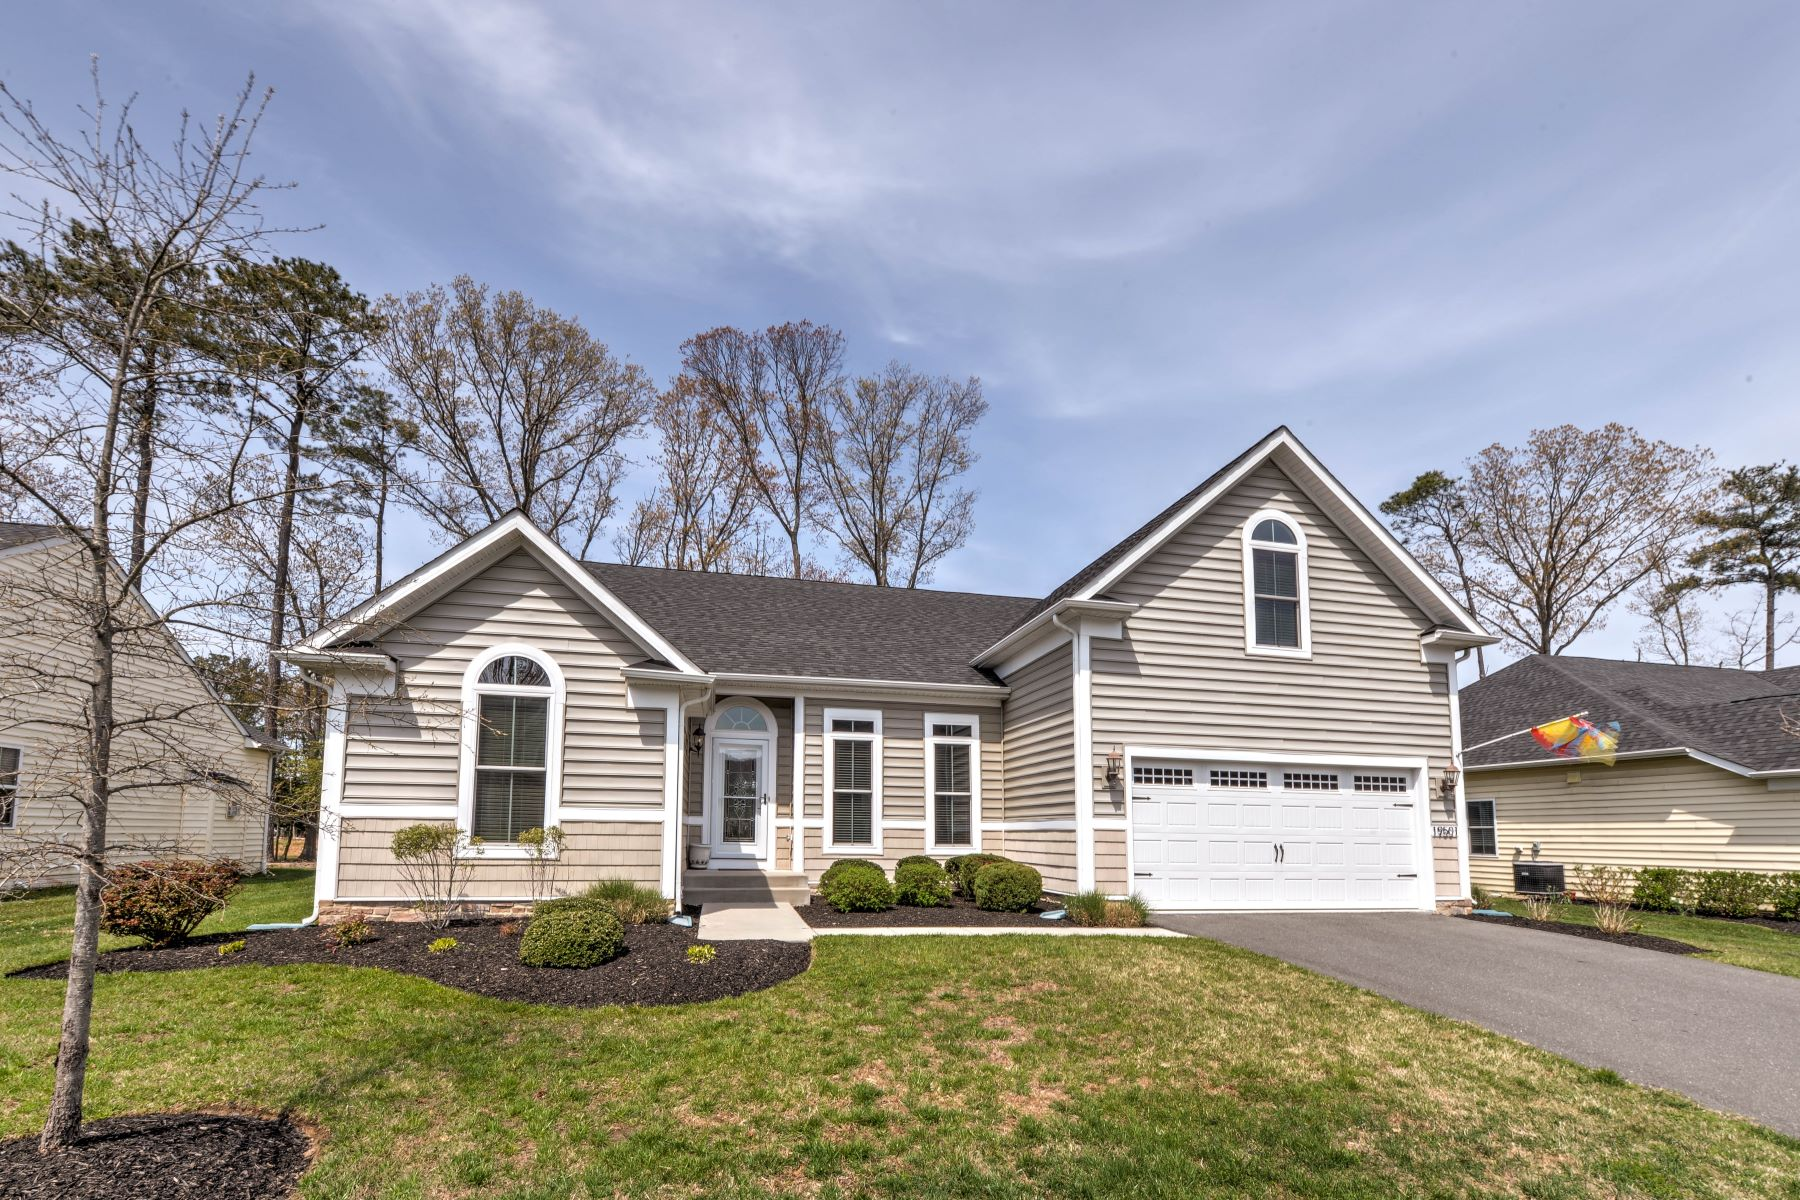 Single Family Home for Sale at 19501 Bridgewater Dr , Rehoboth Beach, DE 19971 19501 Bridgewater Dr Rehoboth Beach, Delaware 19971 United States